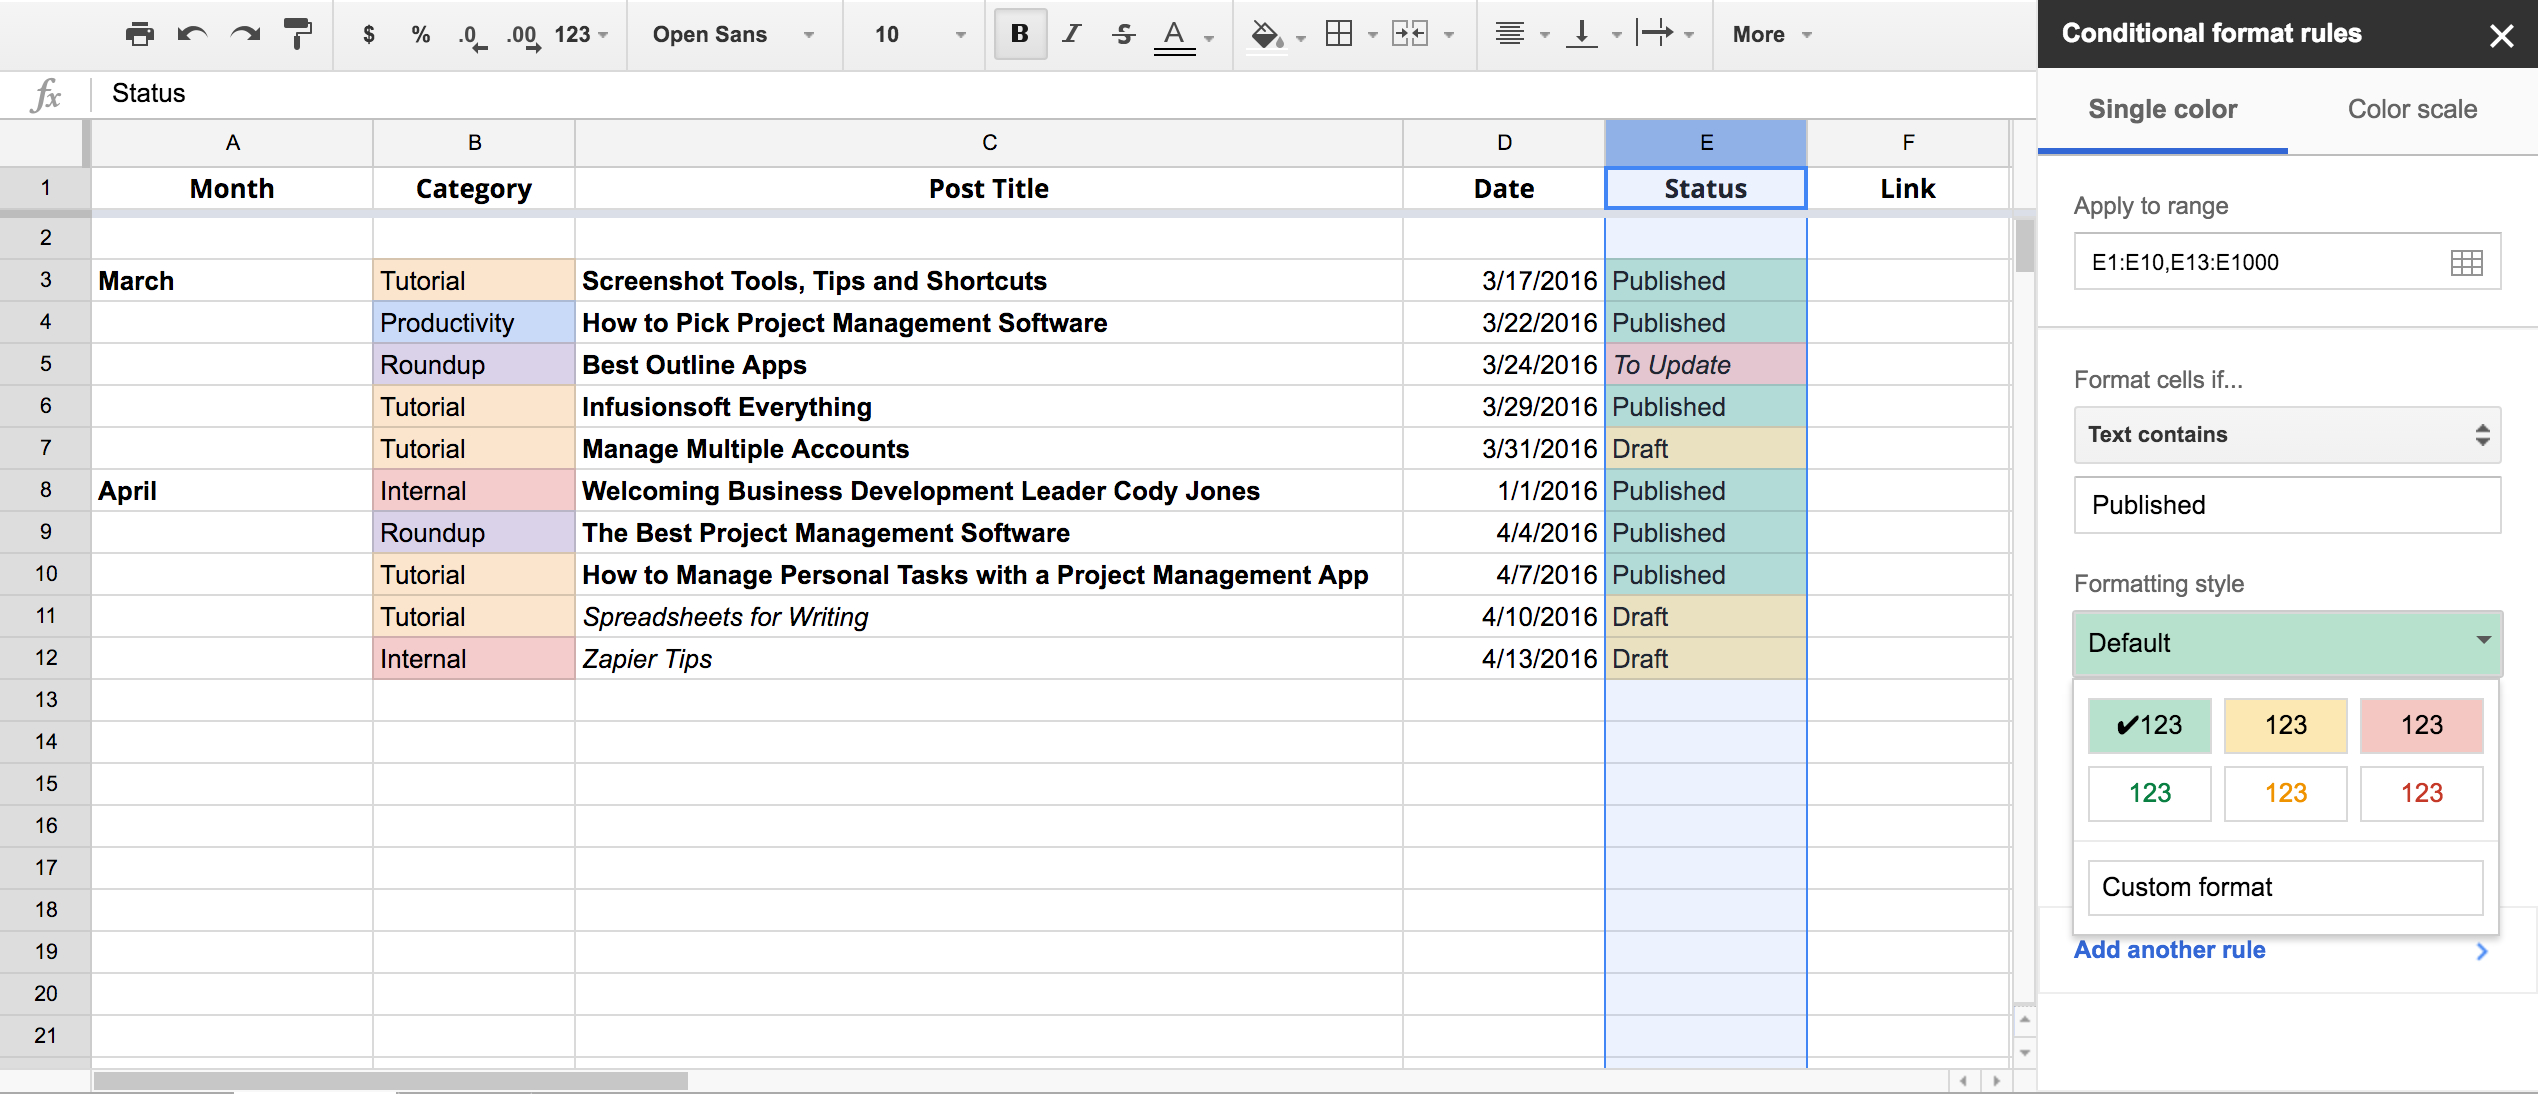 Jobs That Use Spreadsheets Inside Write Faster With Spreadsheets: 10 Shortcuts For Composing Outlines Jobs That Use Spreadsheets Google Spreadshee Google Spreadshee list of jobs that use spreadsheets